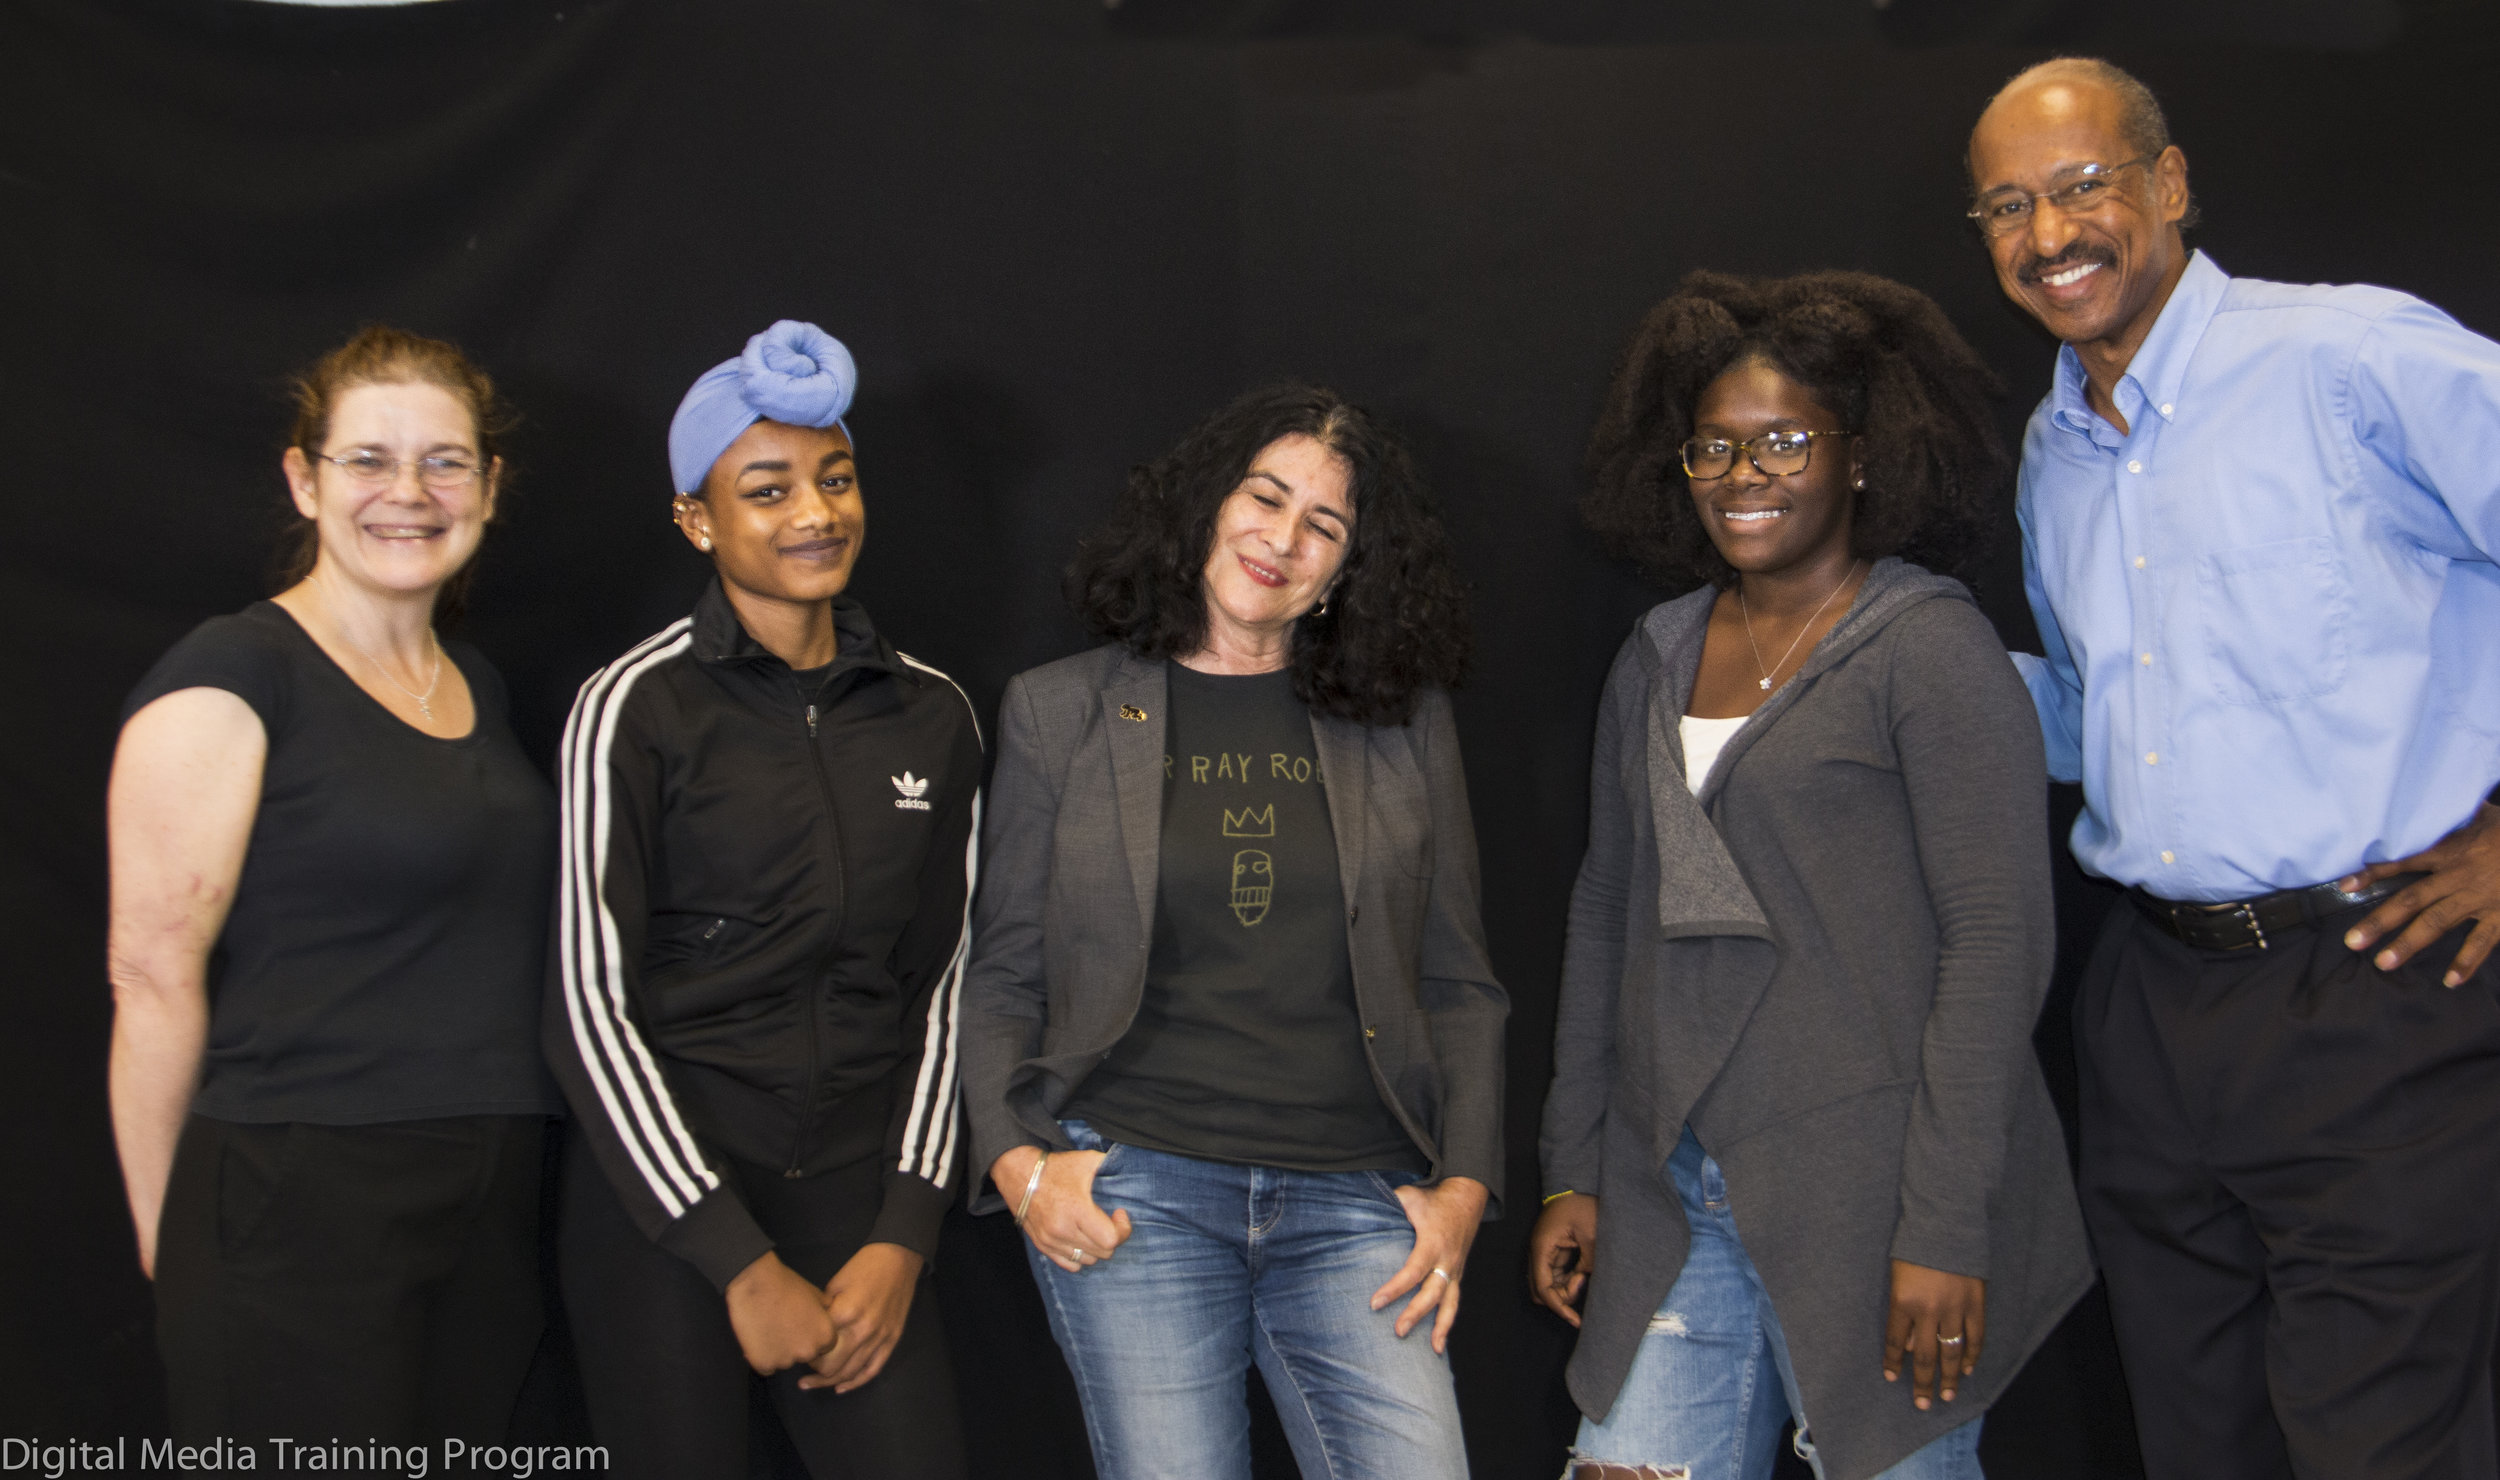 J  ournalism Instructors Joann Mariani and Melvin McCray (far left and far right) assist New Explorers High School students at the conclusion of an interivew with Photographer Janette Beckman (center).